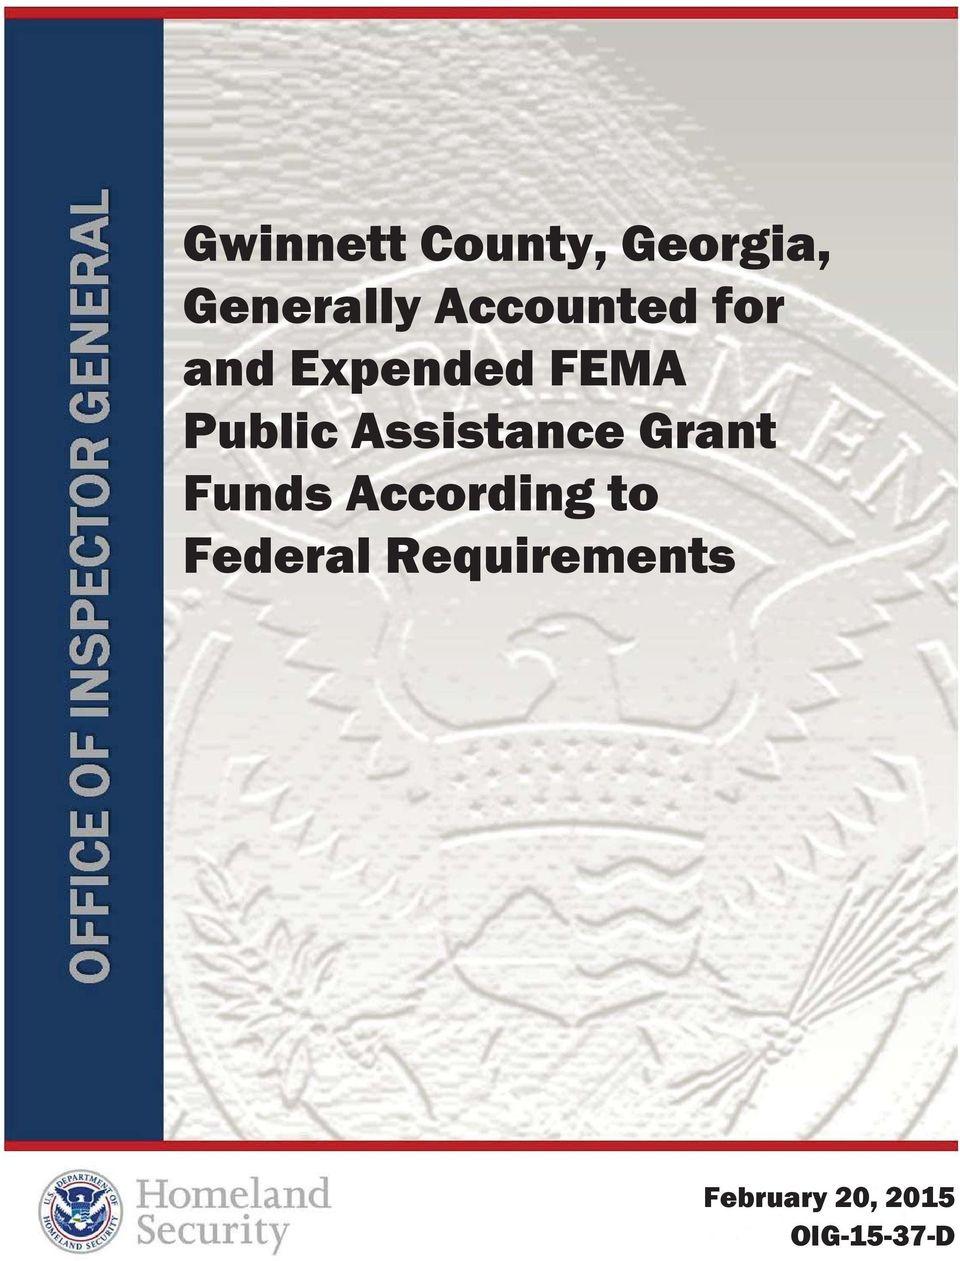 Public Assistance Grant Funds